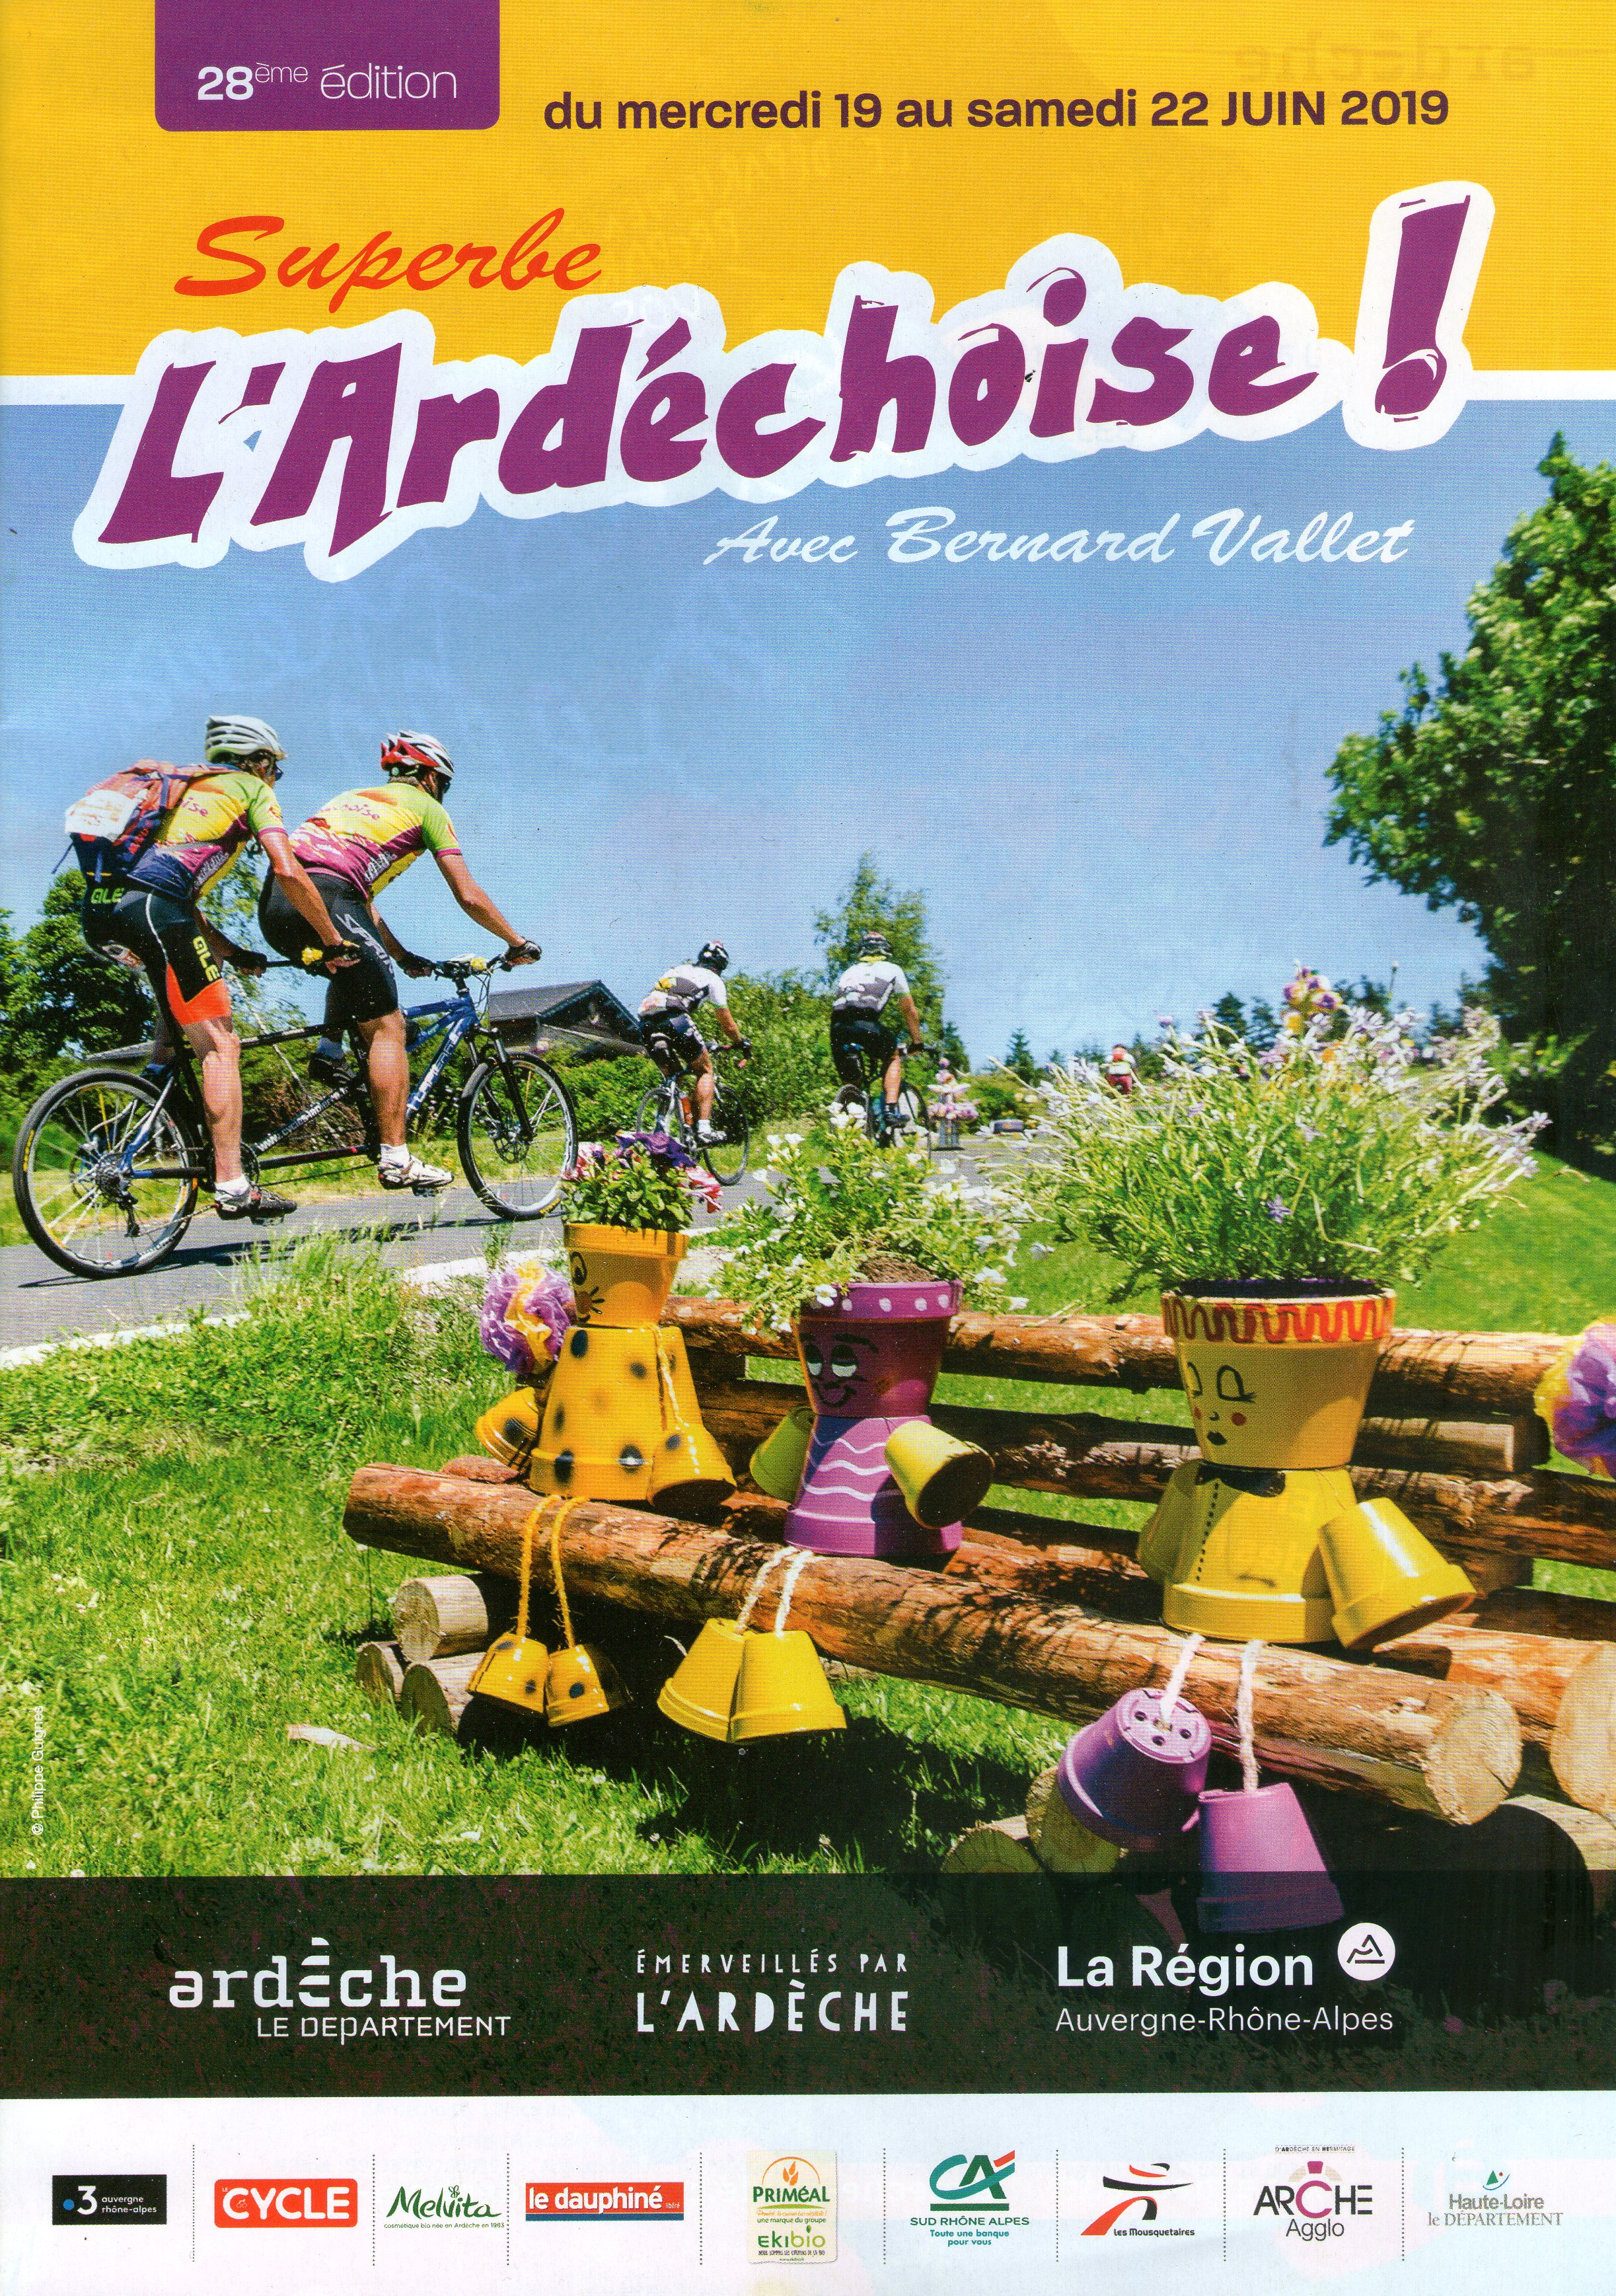 Events…Put it in your diary : Passage des participants de l'épreuve cyclo L'Ardéchoise